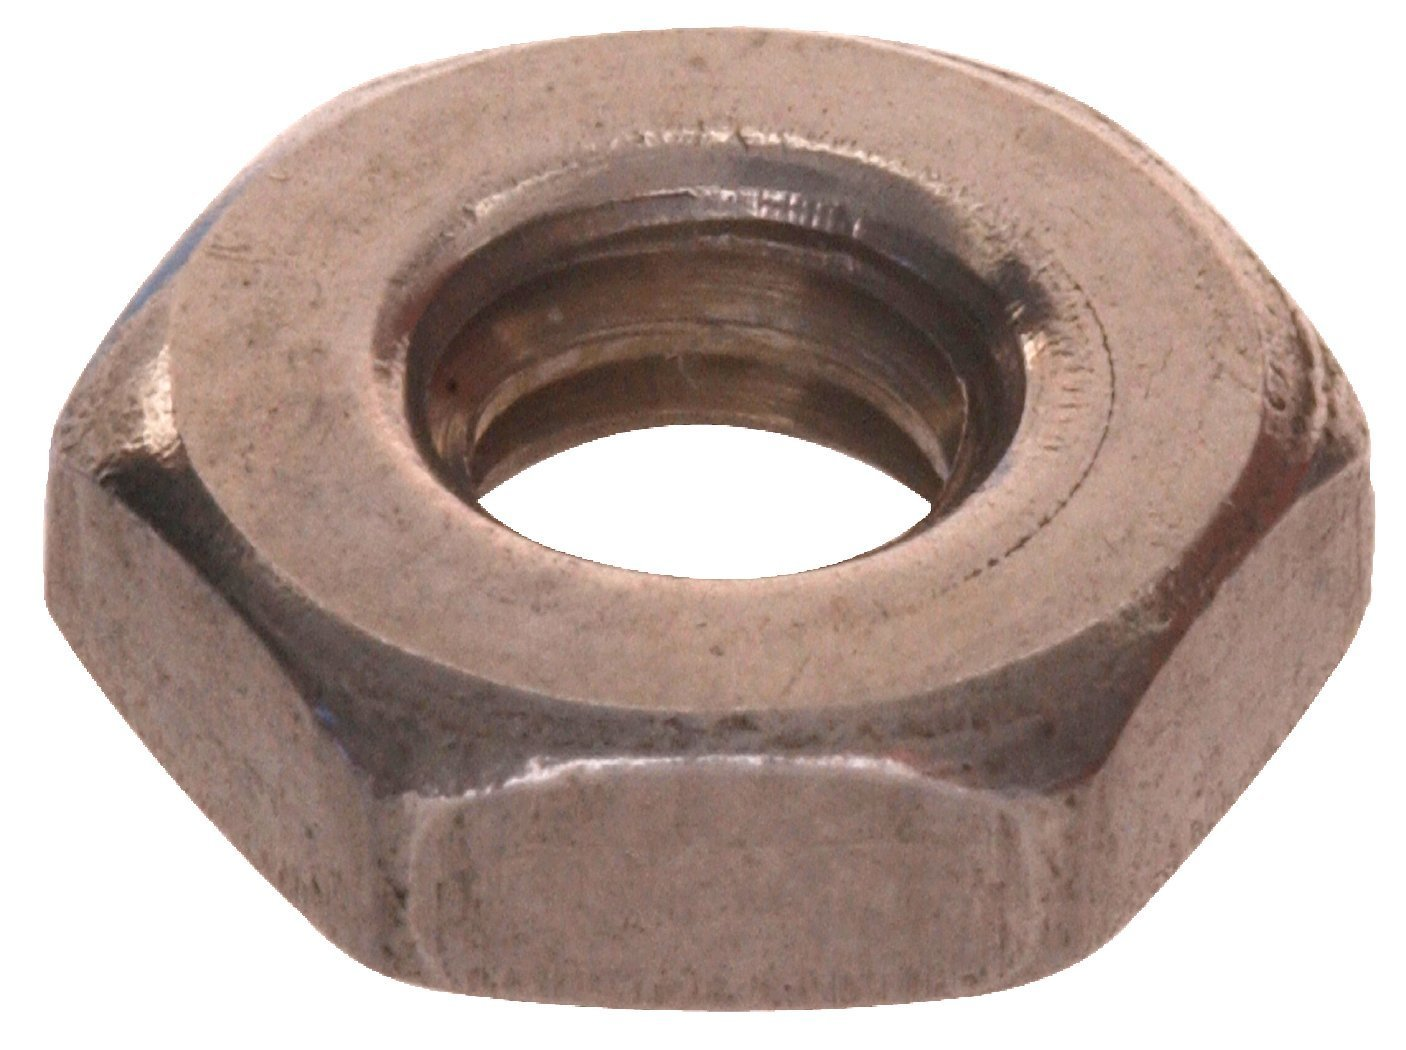 6-Pack The Hillman Group 43474 9//16-18-Inch Stainless Steel Jam Nut